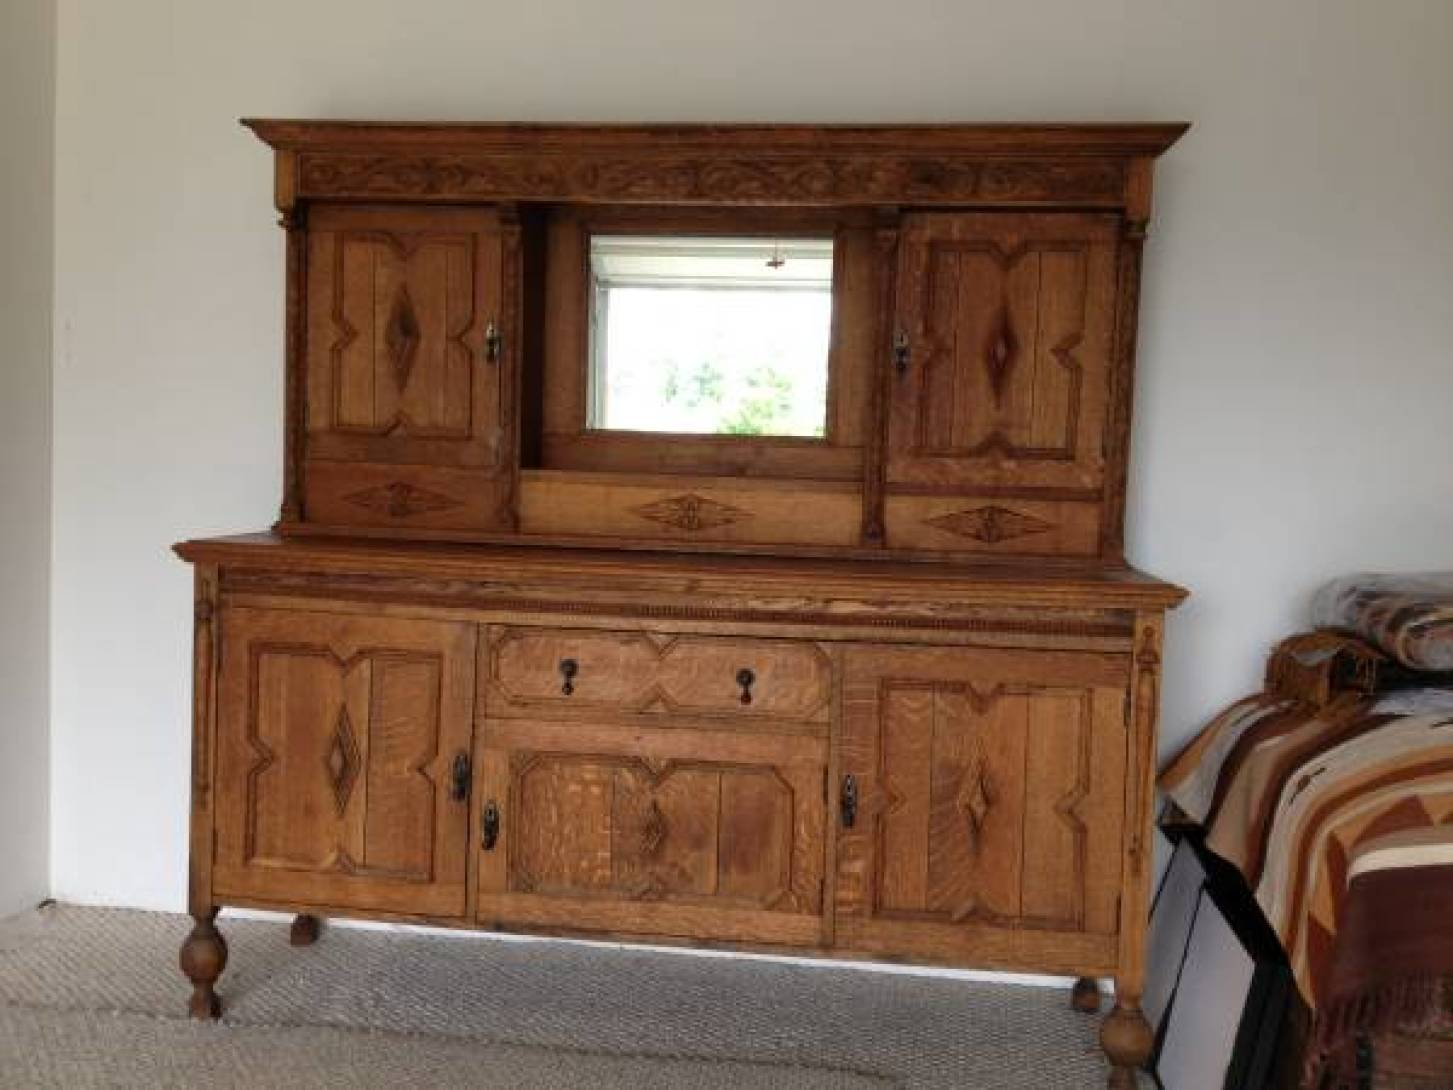 Lovely Antique Oak Sideboard - $750 (Freeland, Whidbey Island)